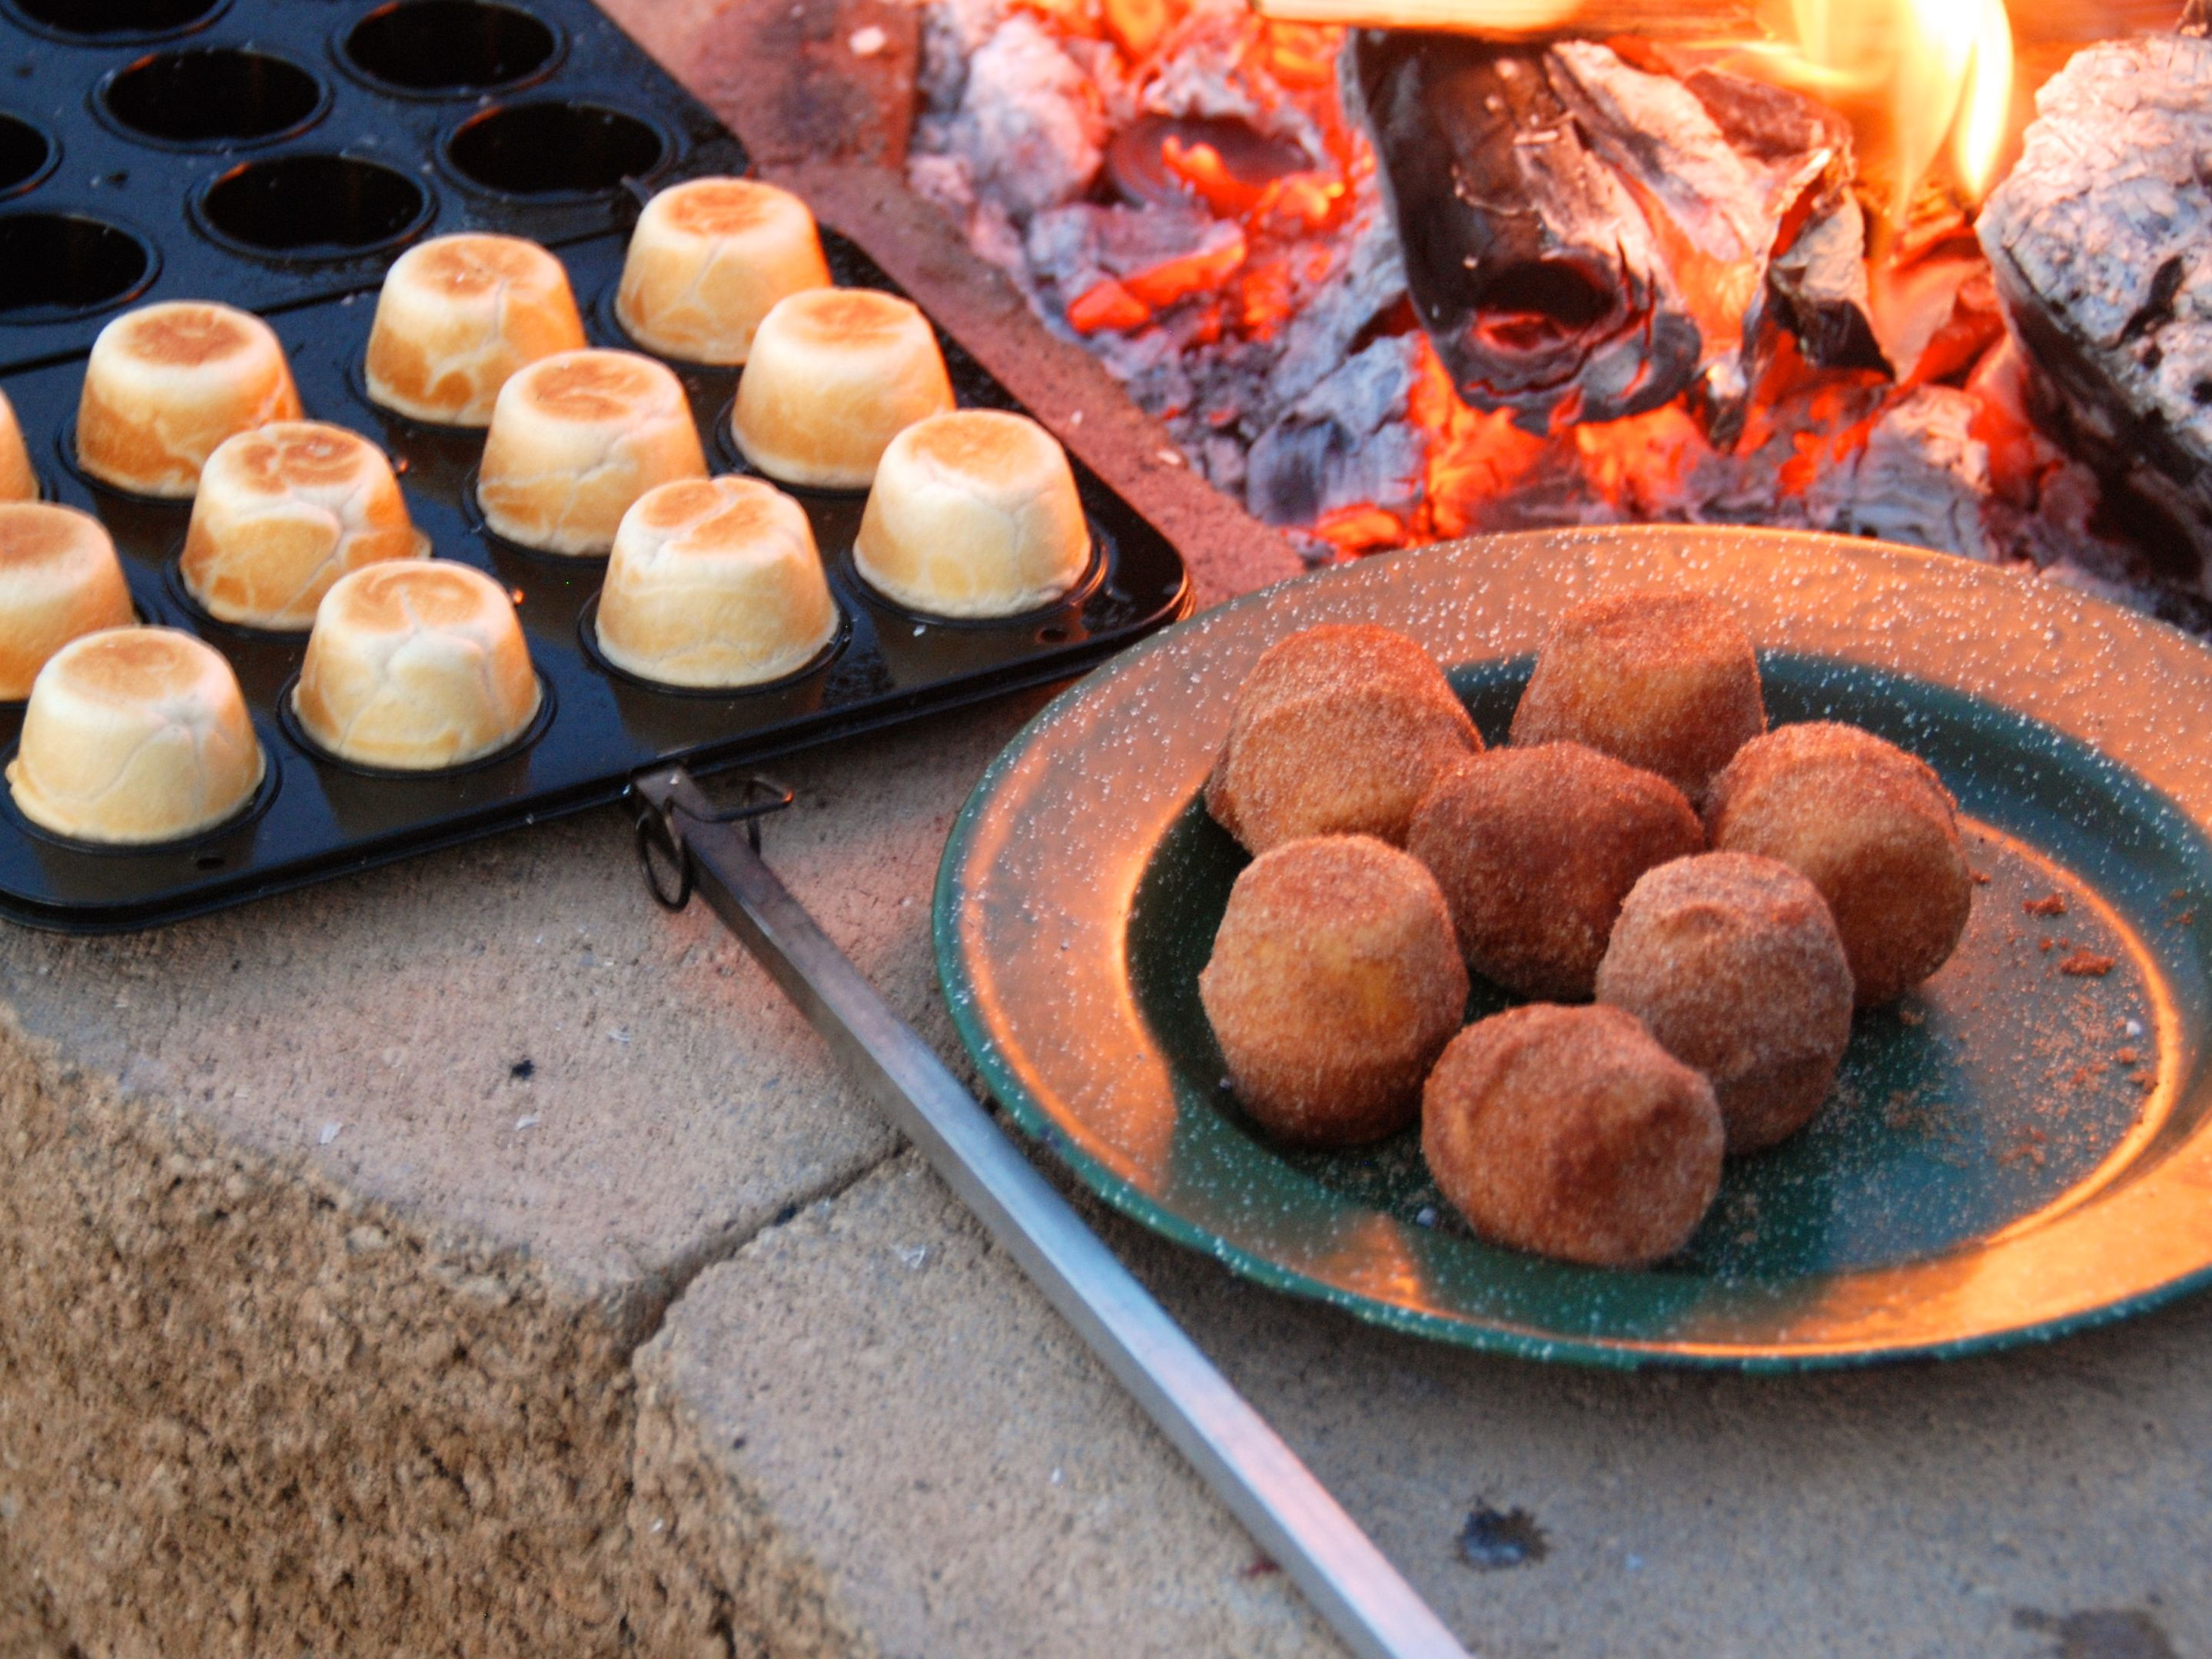 Doughies are a fun camping/grilling treat and this would be a unique Christmas gift idea for anyone who goes camping or has an outdoor fire pit.  I even make them with my nieces and nephews over the grill!  http://doughymaker.com